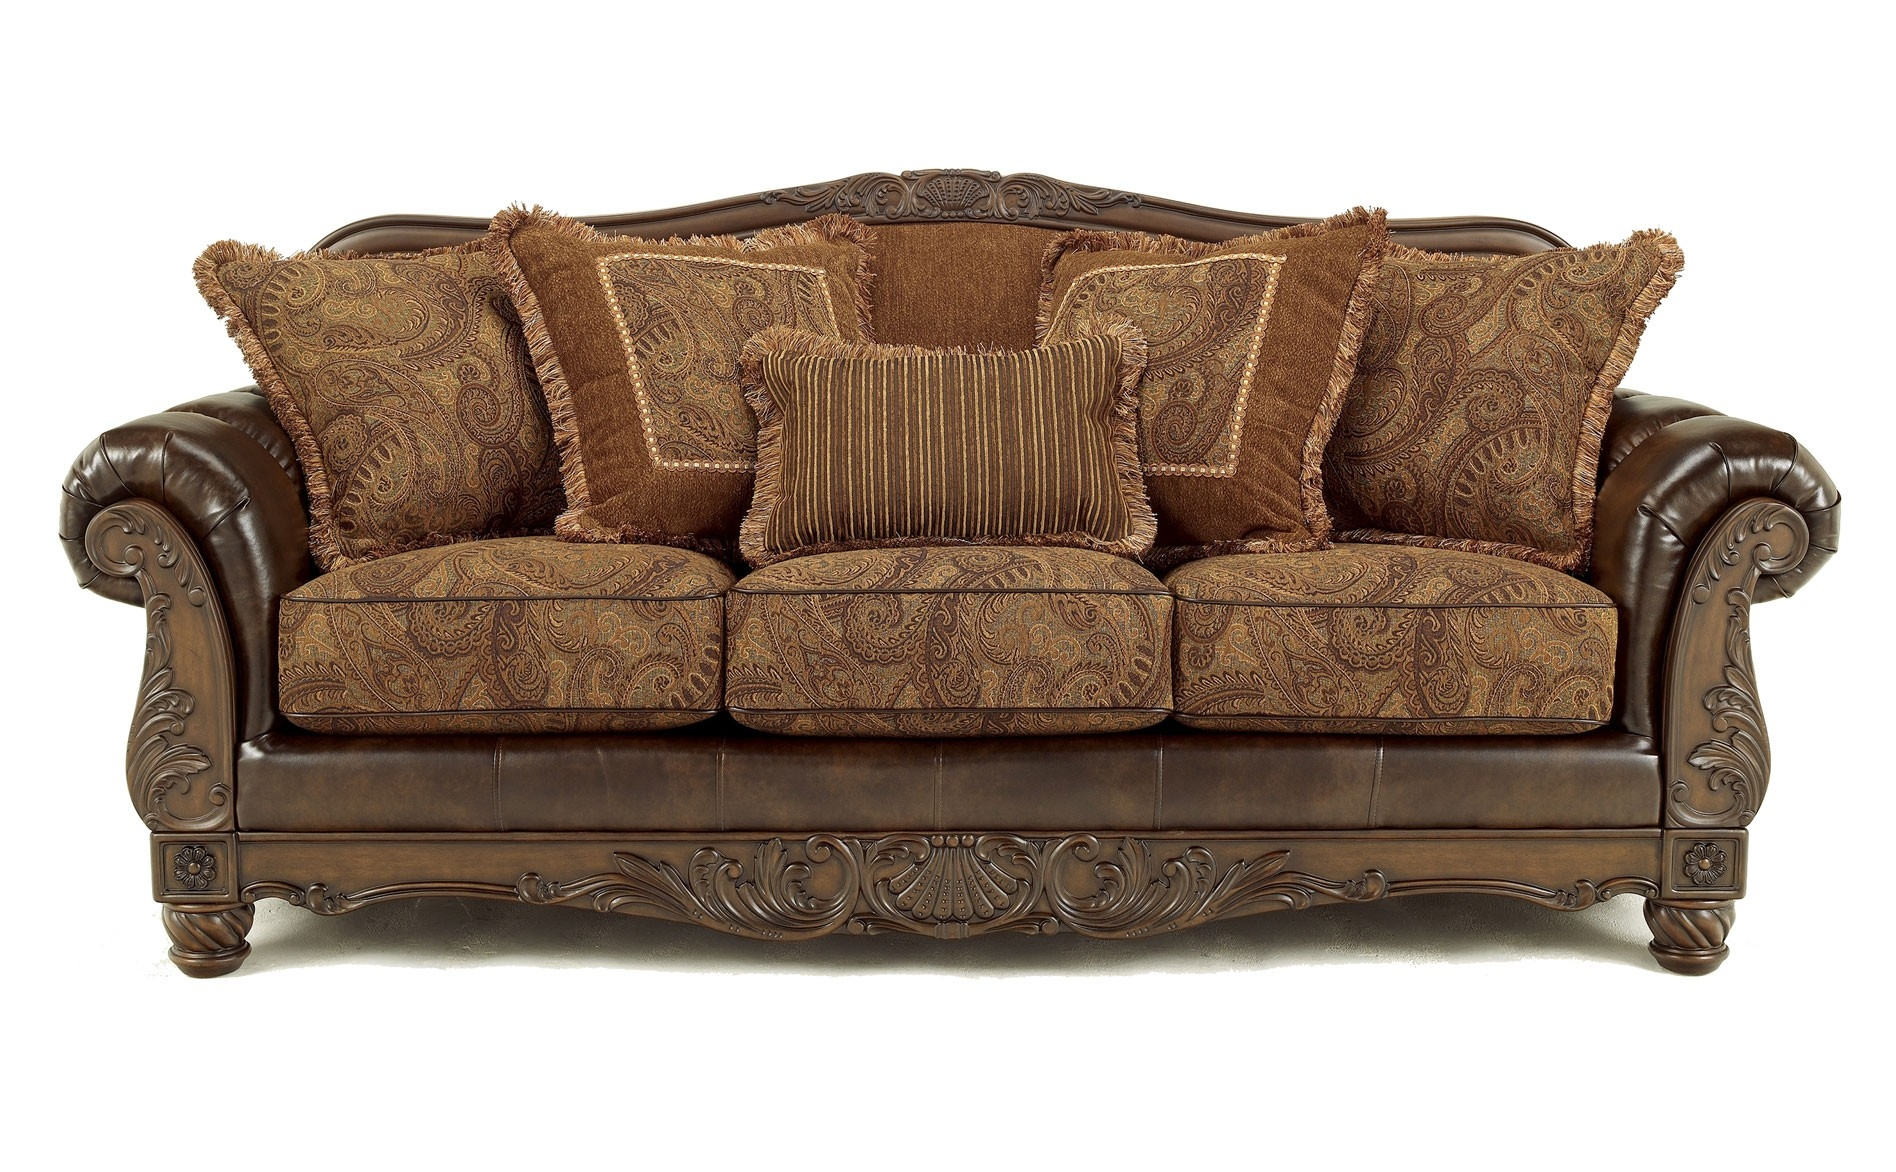 Old Fashioned Sofa Styles Thesofa Intended For Old Fashioned Sofas (Image 6 of 15)